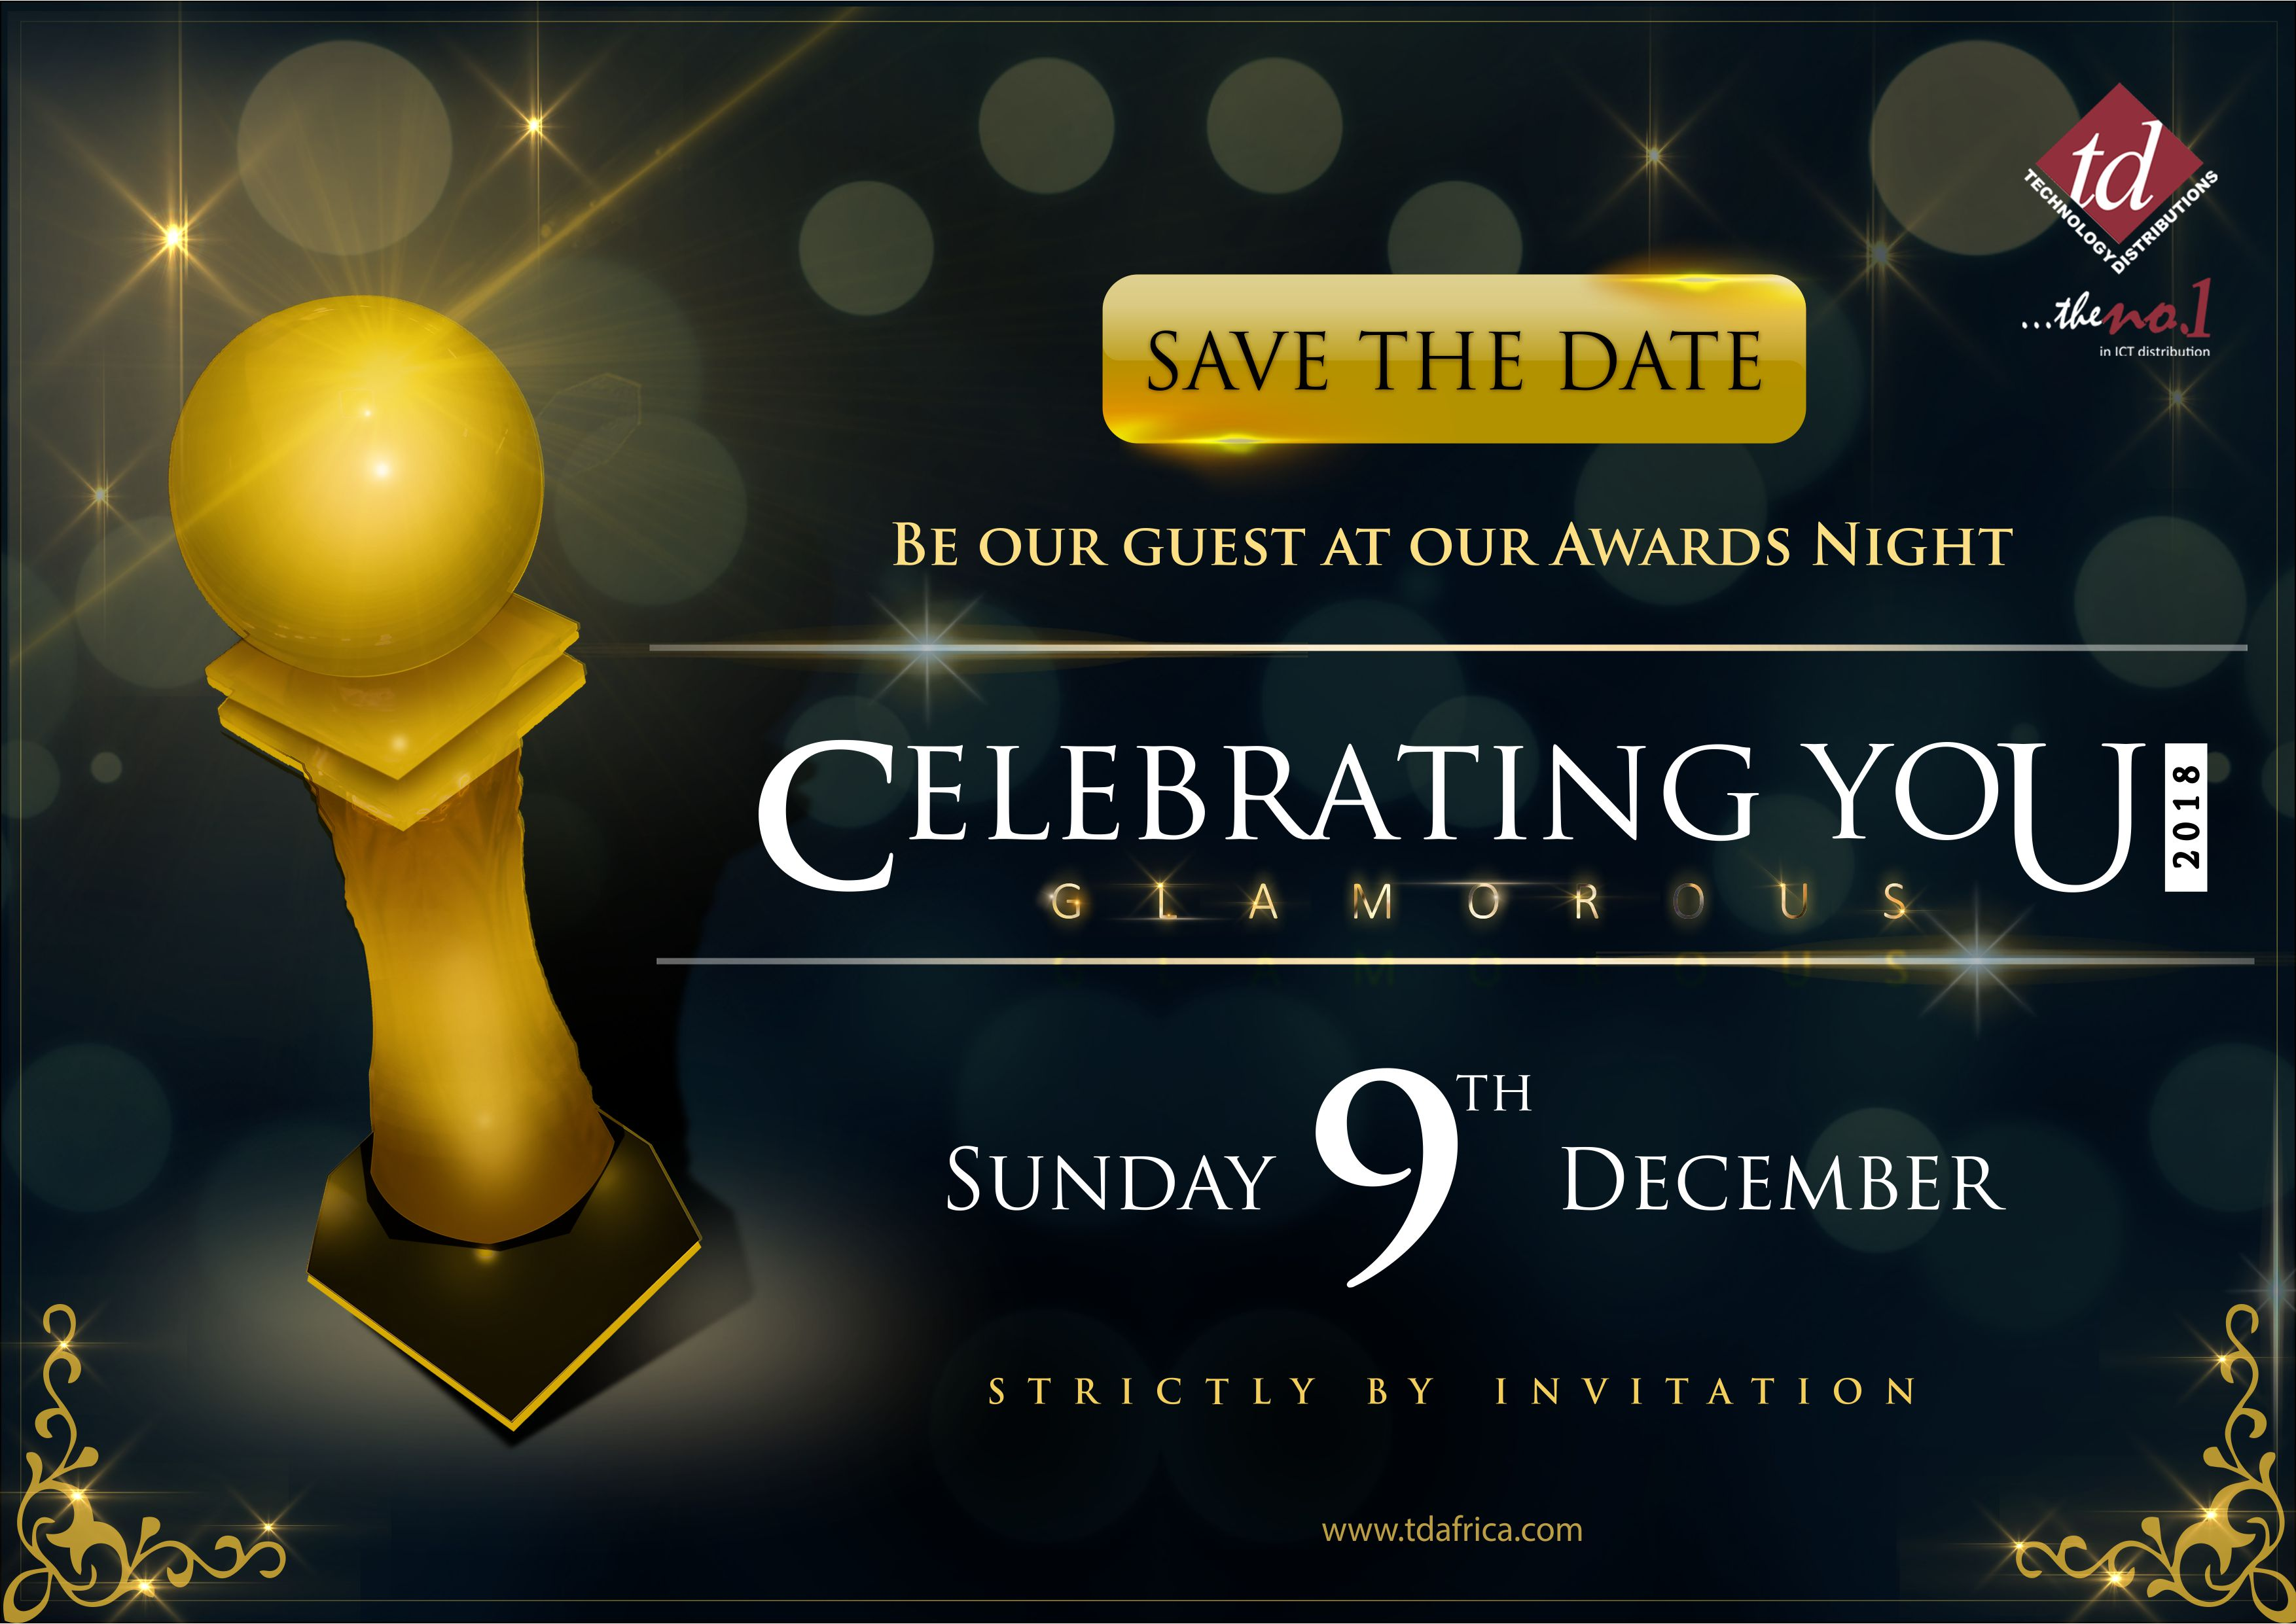 ANTICIPATION RISES FOR TD'S CELEBRATING YOU 2018 - Brand Spur